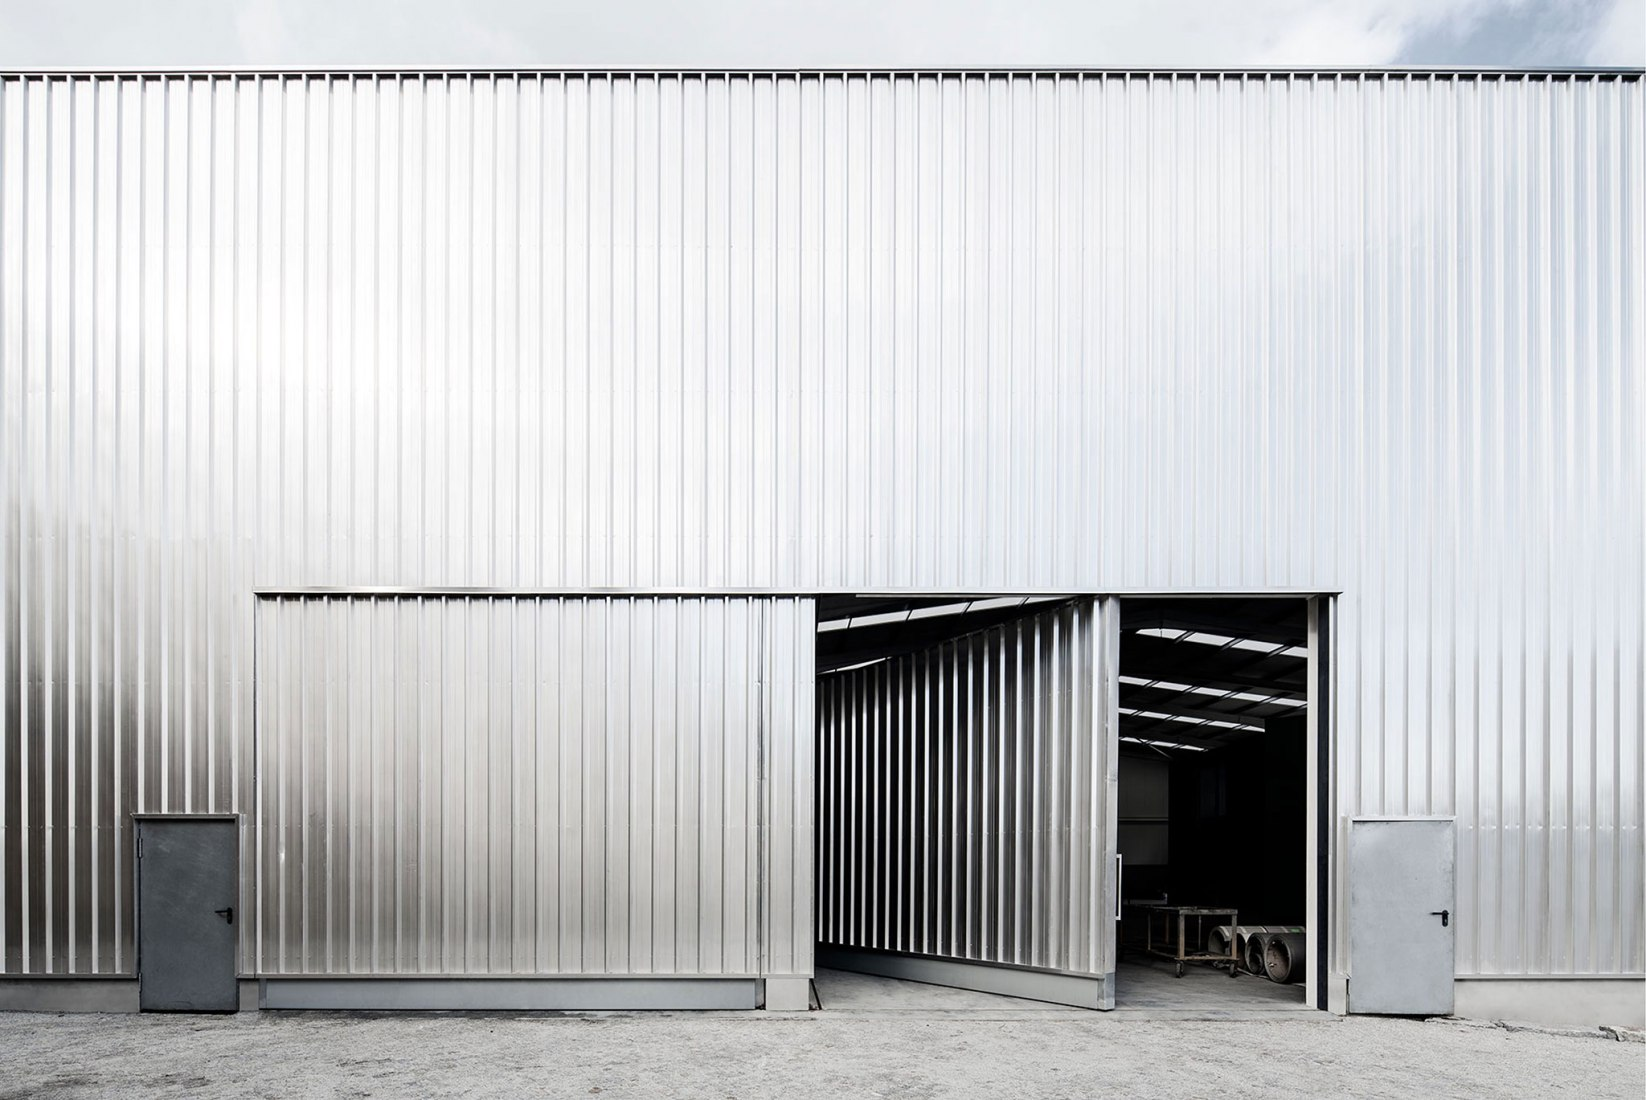 Steel warehouse by M-AO. Photograph by NUDO